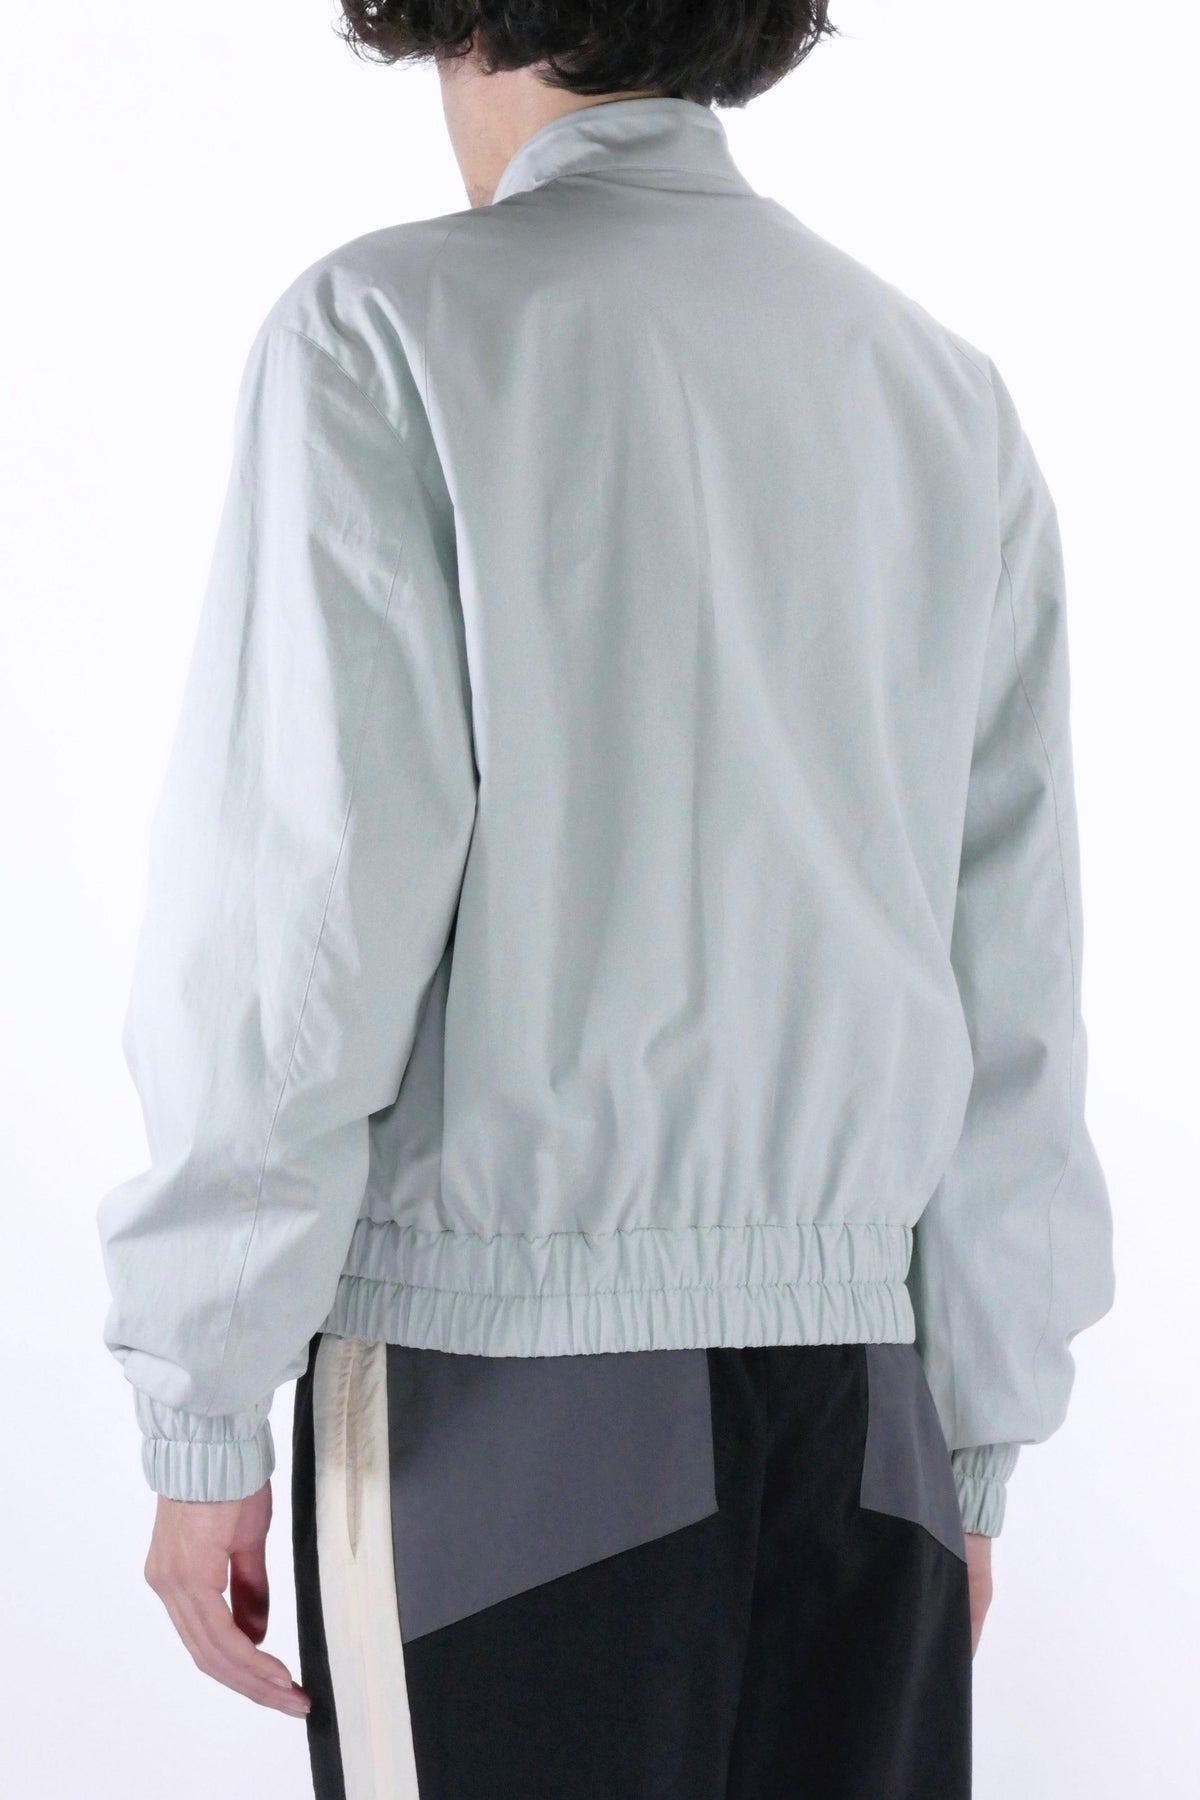 Kenzo Zipped Bomber Jacket Grey Green